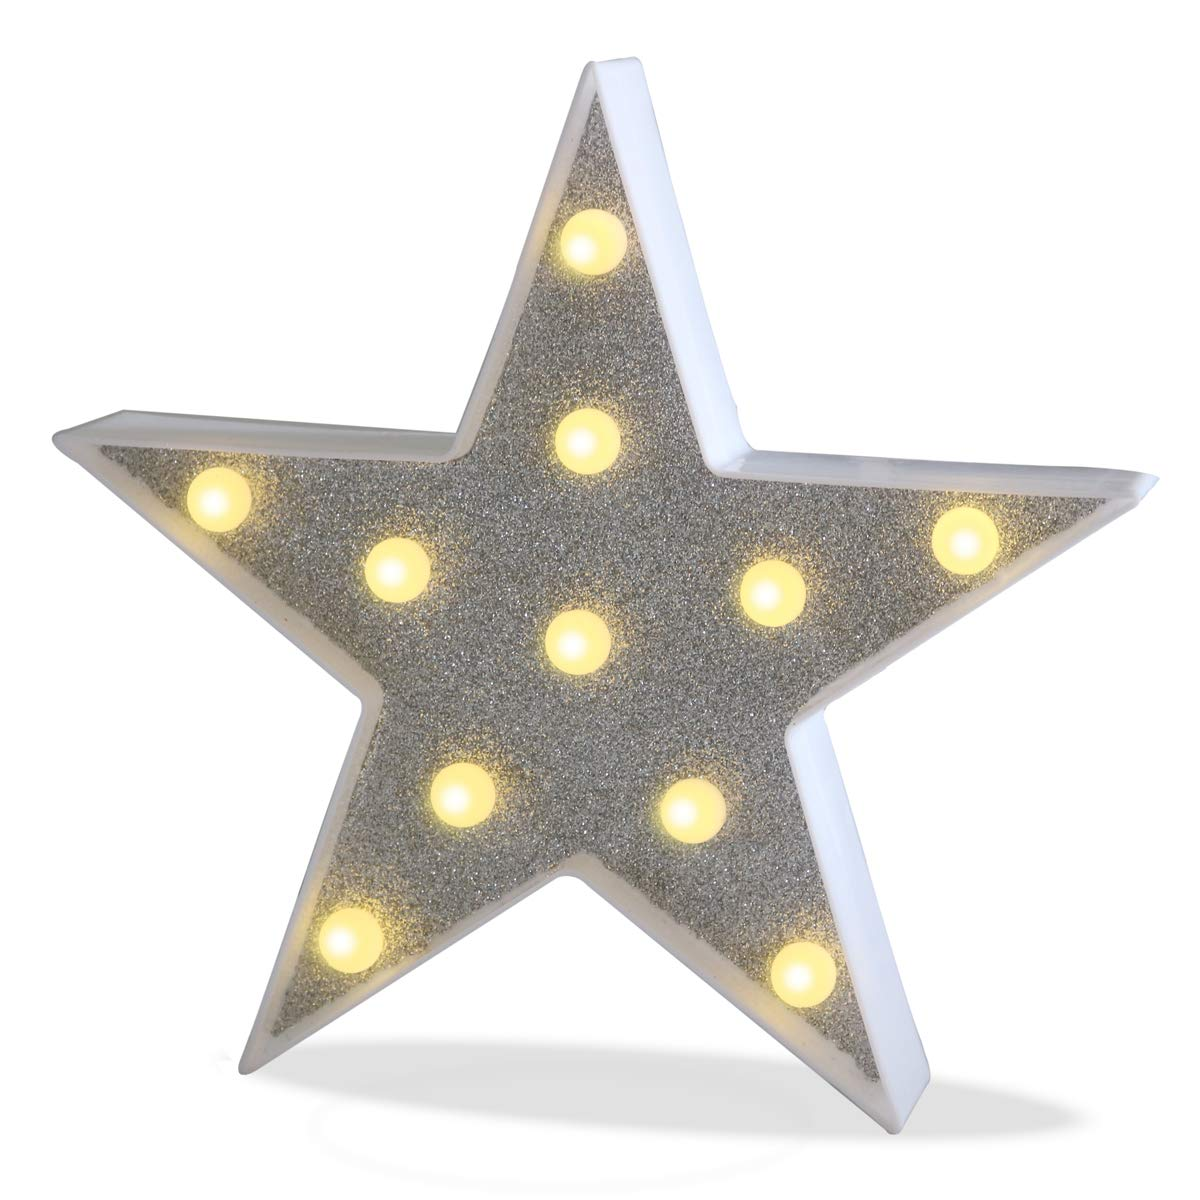 Buy Pooqla Delicore Marquee Light Star Shaped Led Plastic Sign Lighted Marquee Star Sign Wall Decor Battery Operated Giltter Shining Star Online At Low Prices In India Amazon In